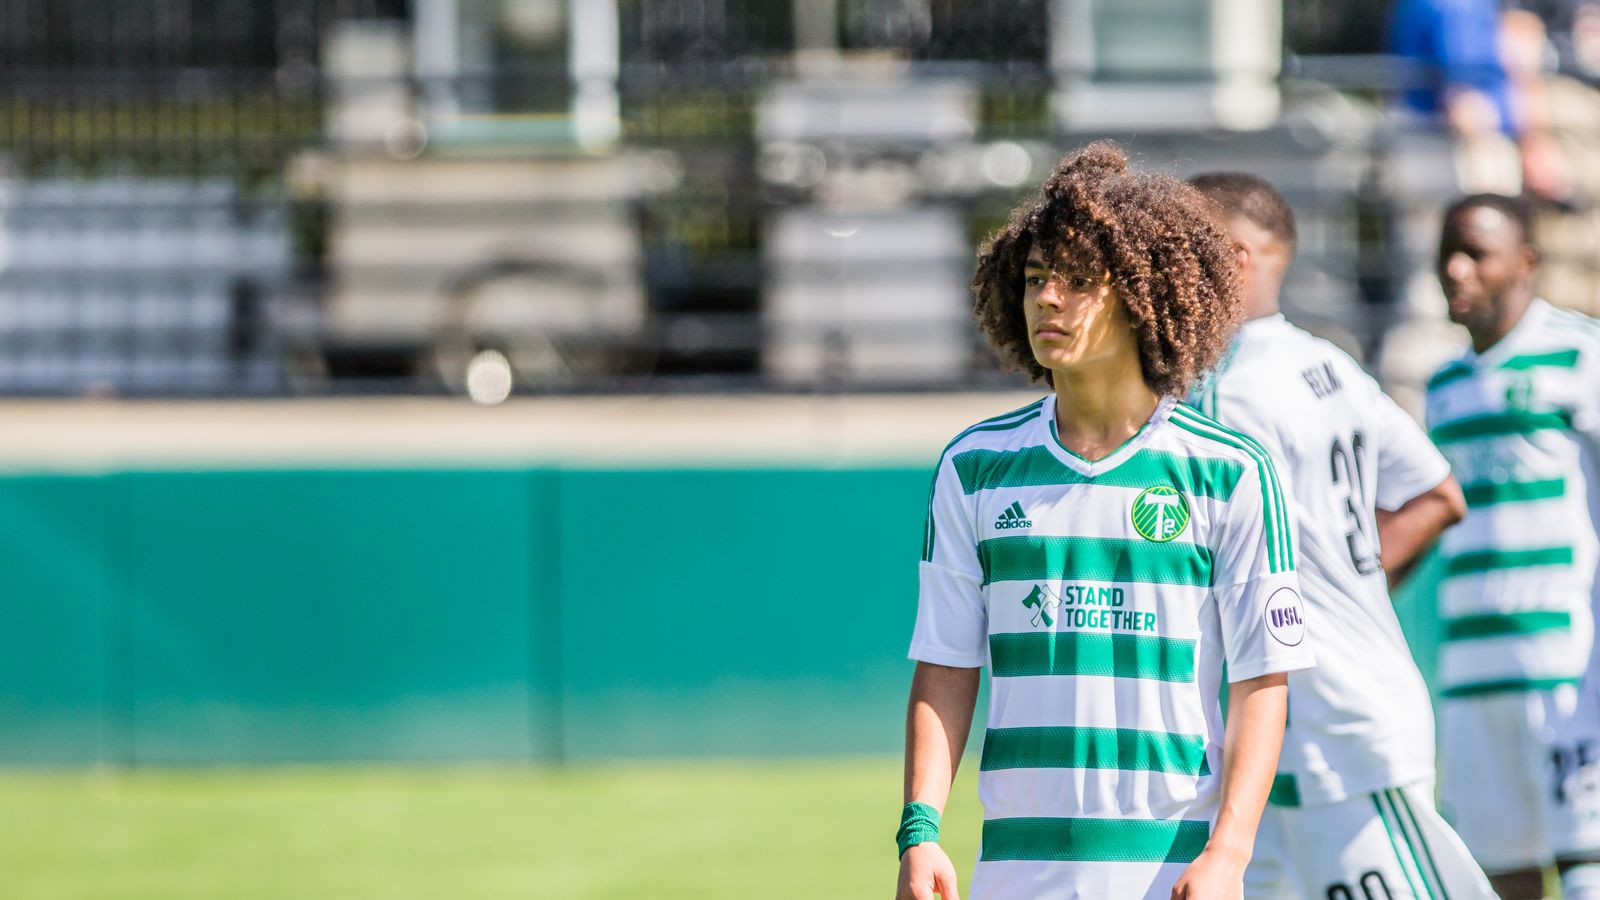 Dylan-damraoui-portland-timbers-red-city-images.jpg__1_of_1_.0.0